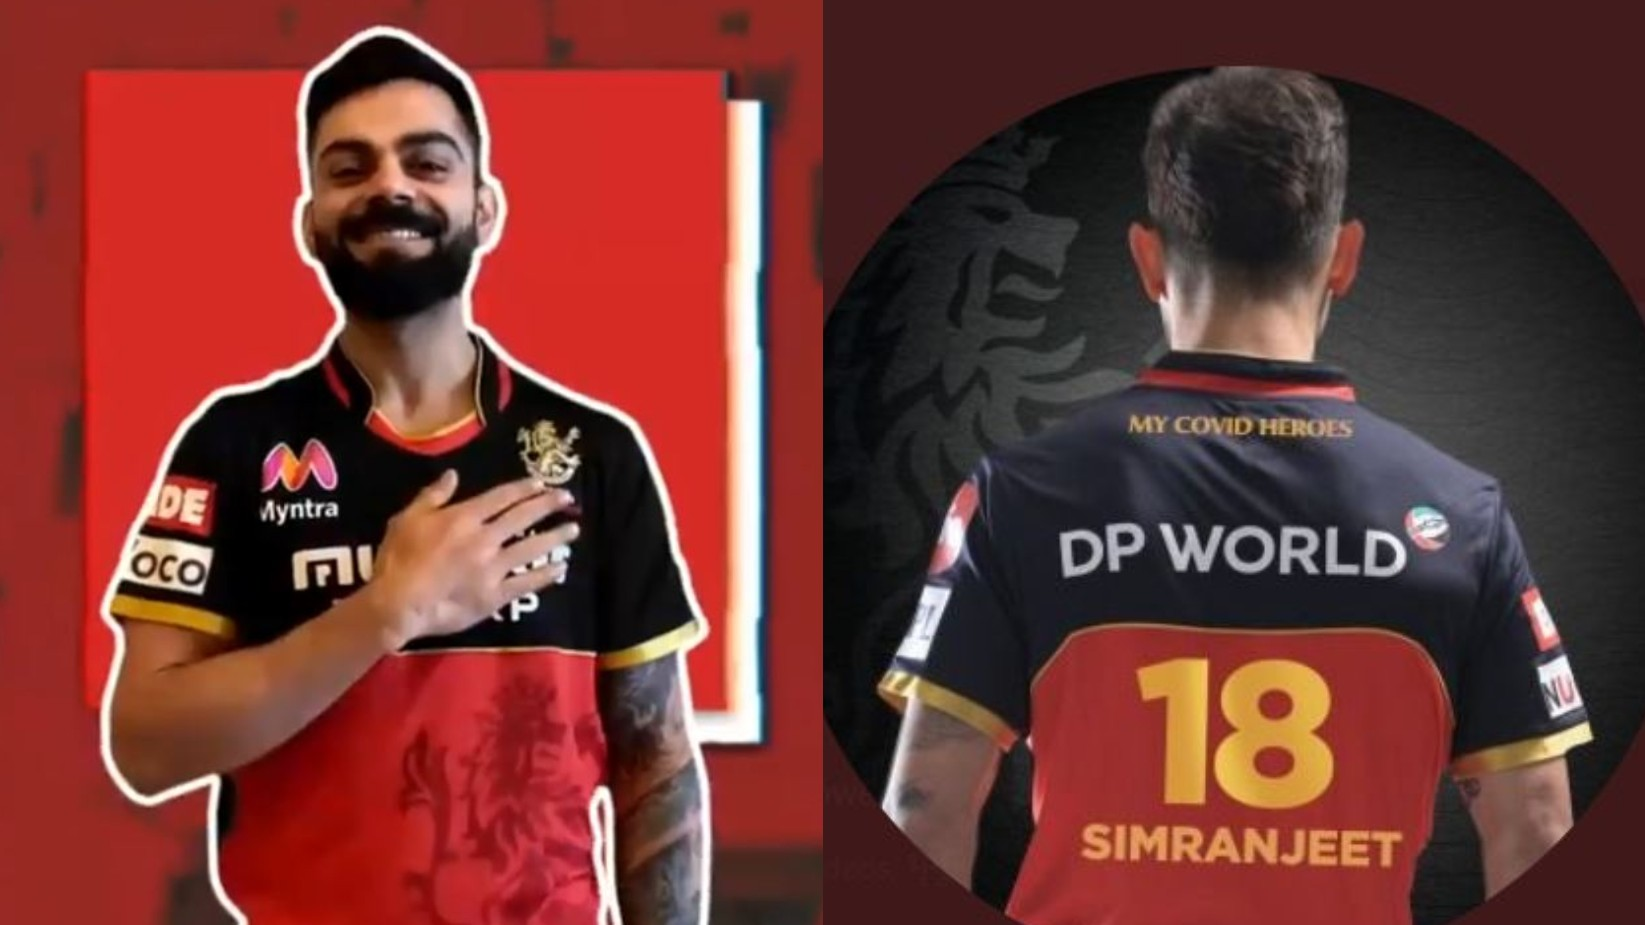 IPL 2020: Virat Kohli and RCB players to wear jerseys with Corona warriors' names to pay tribute